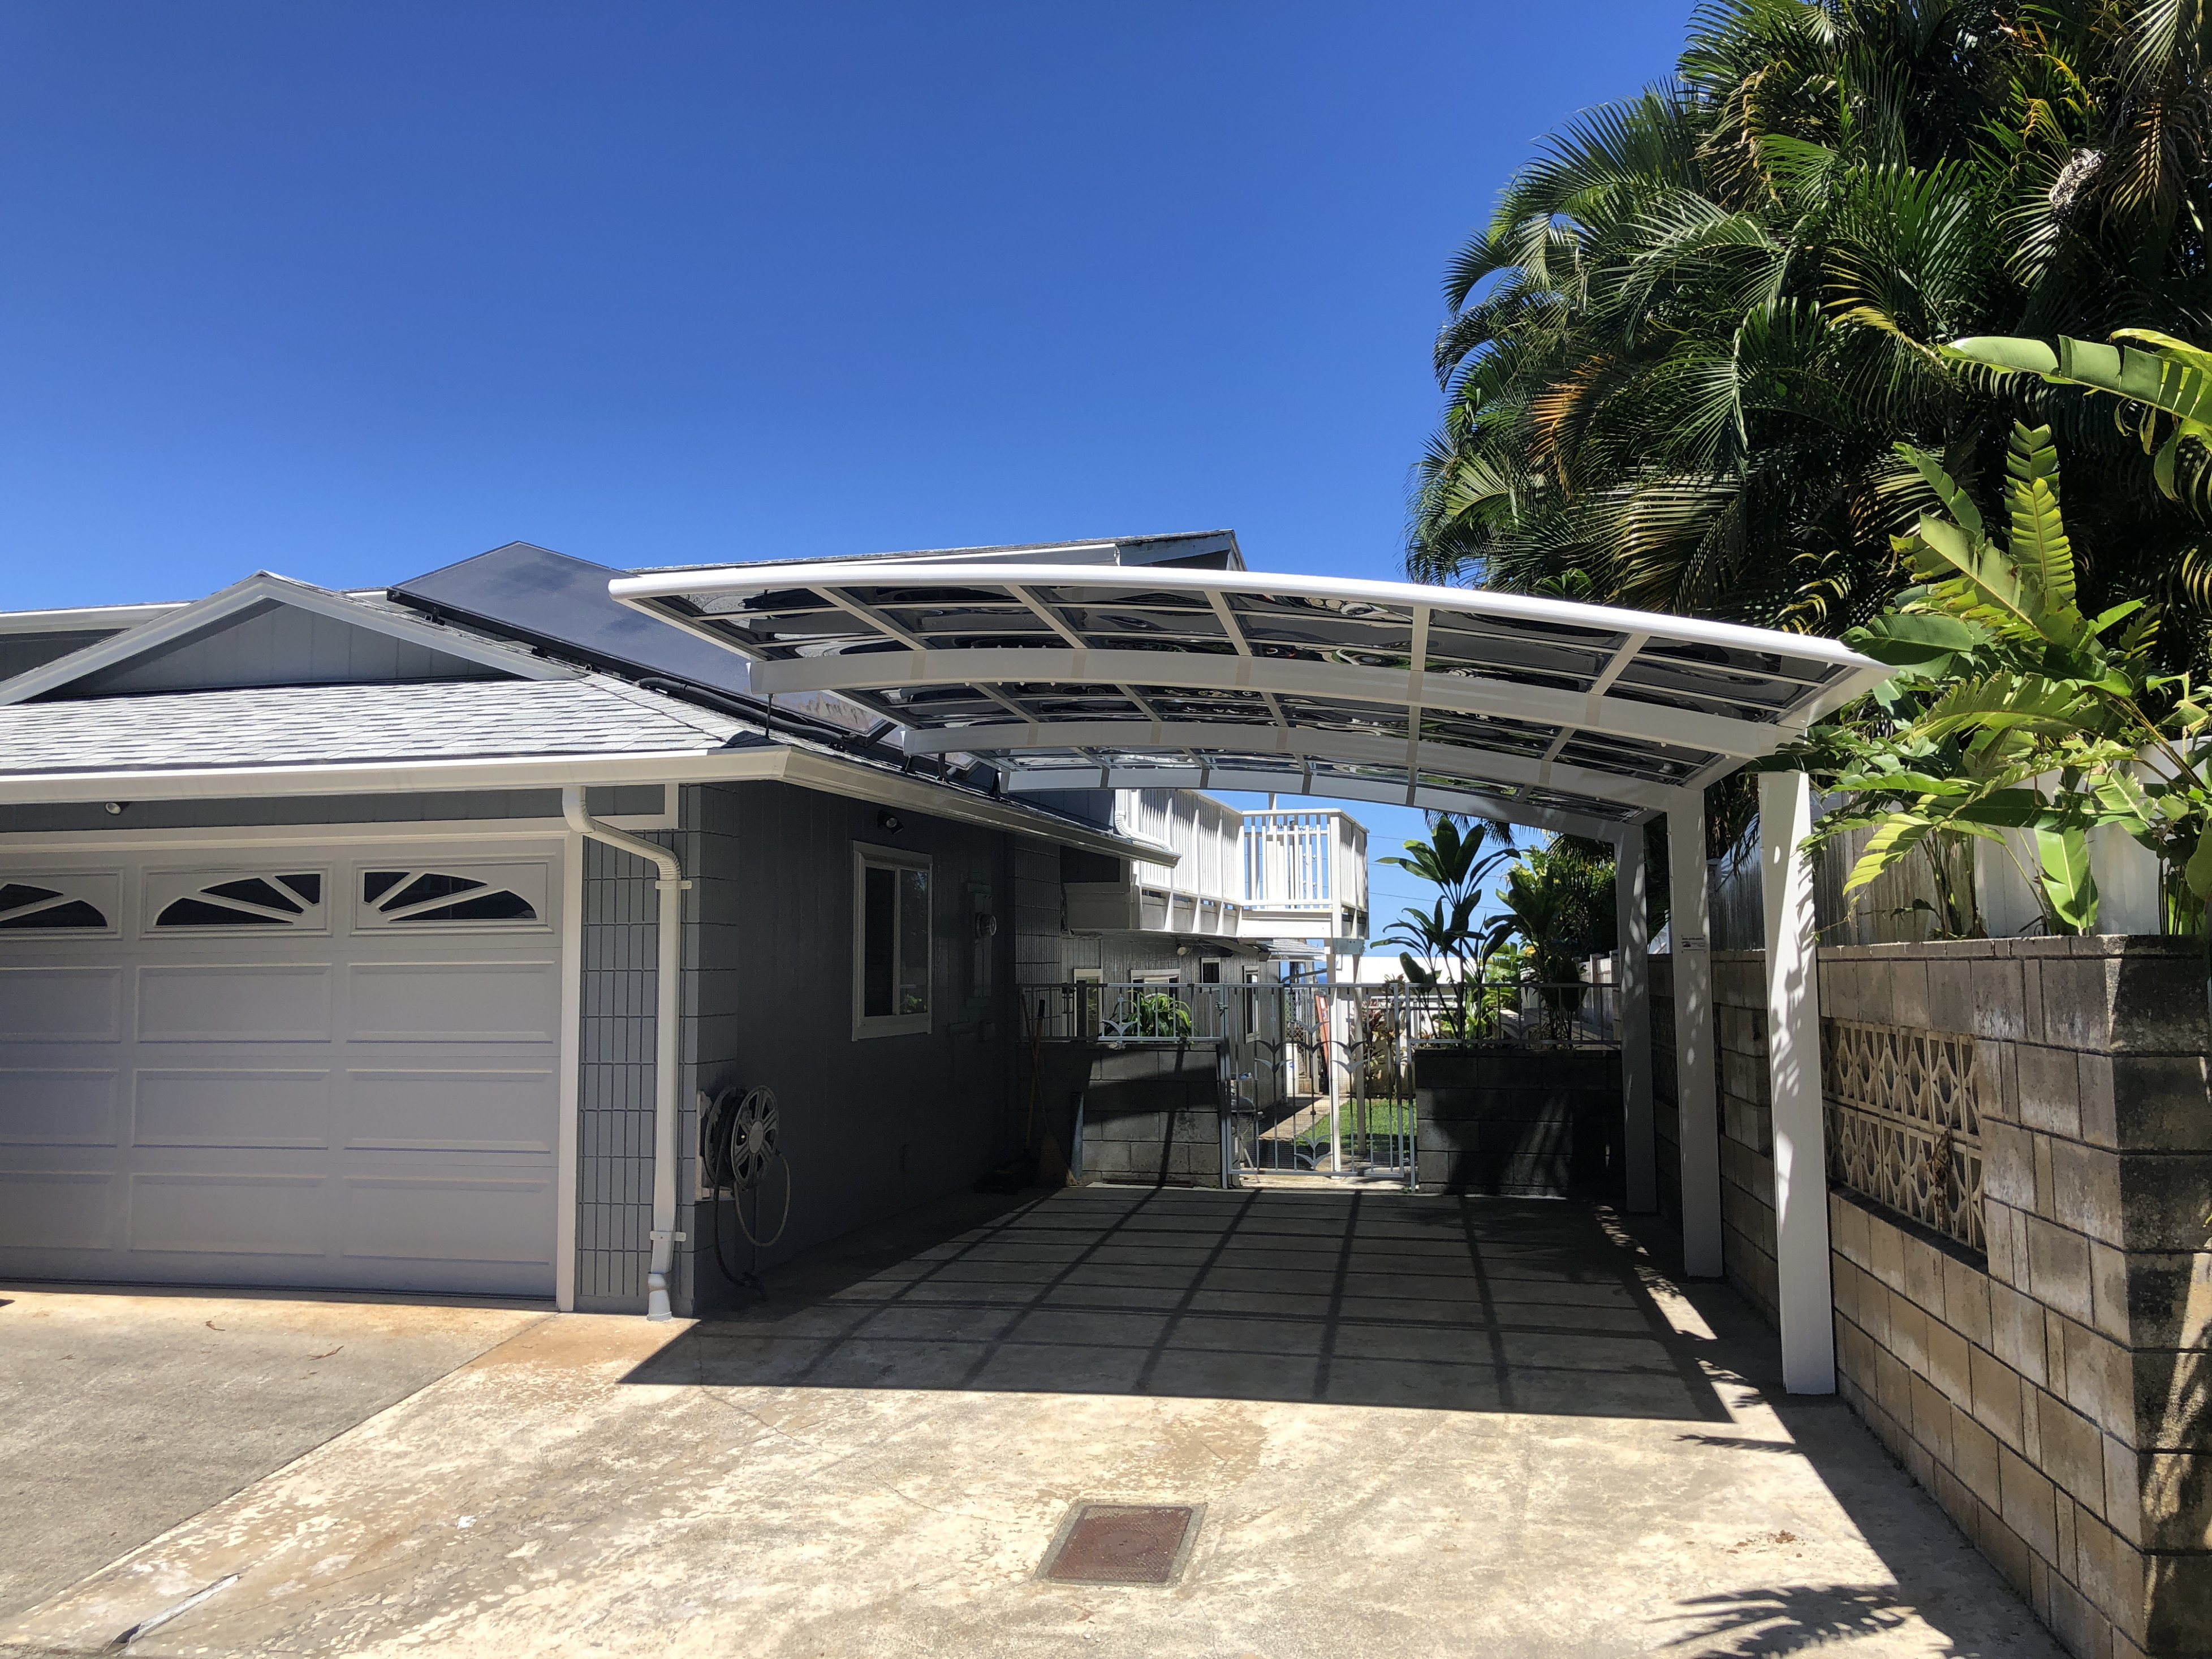 Home Aluminum Carports, Patio Cover We Got You Covered! Aluminum Carport Ideas